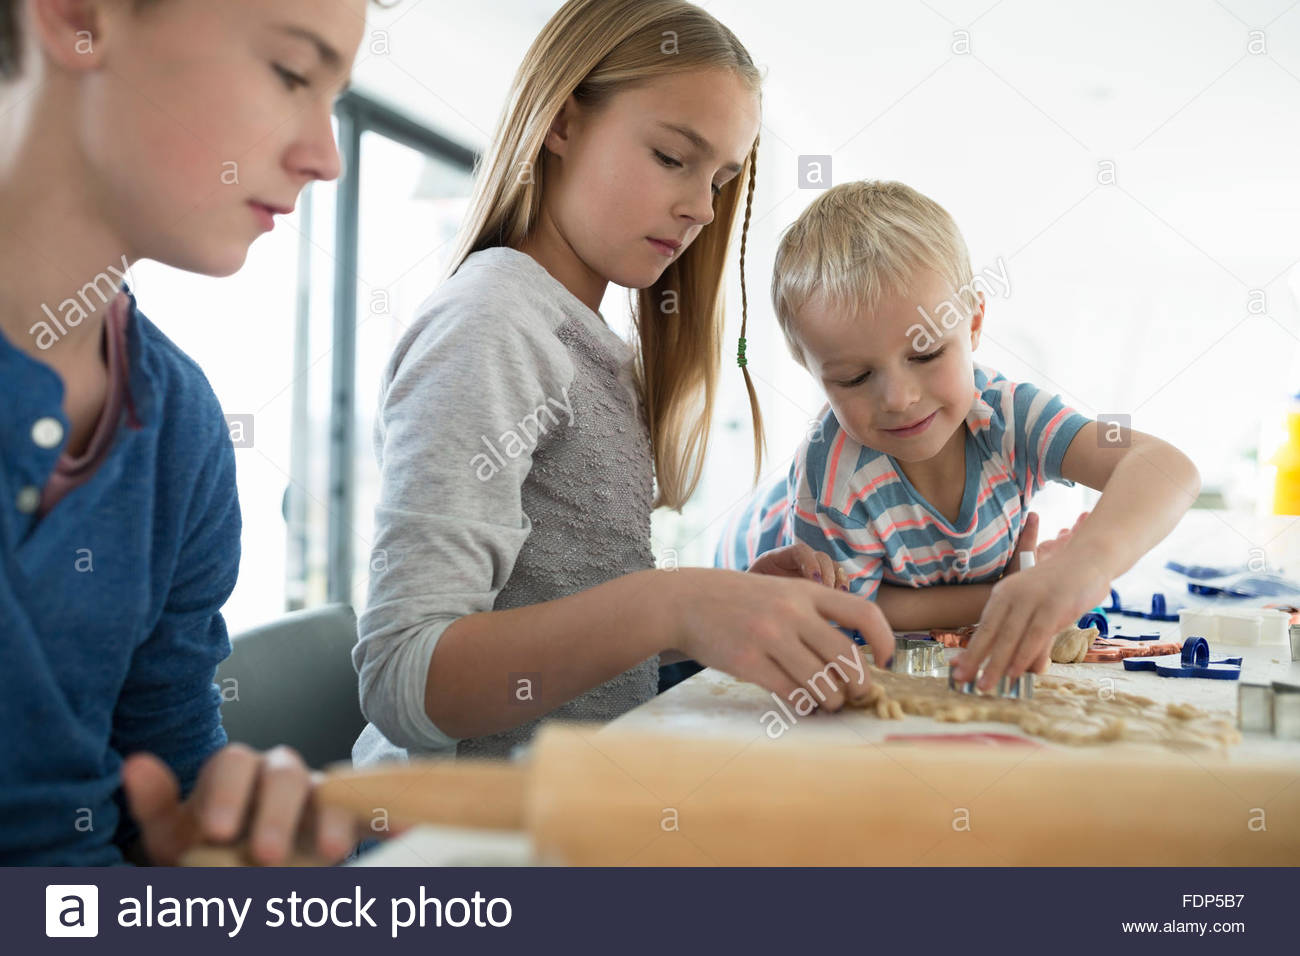 Brothers and sister baking with cookie cutters - Stock Image